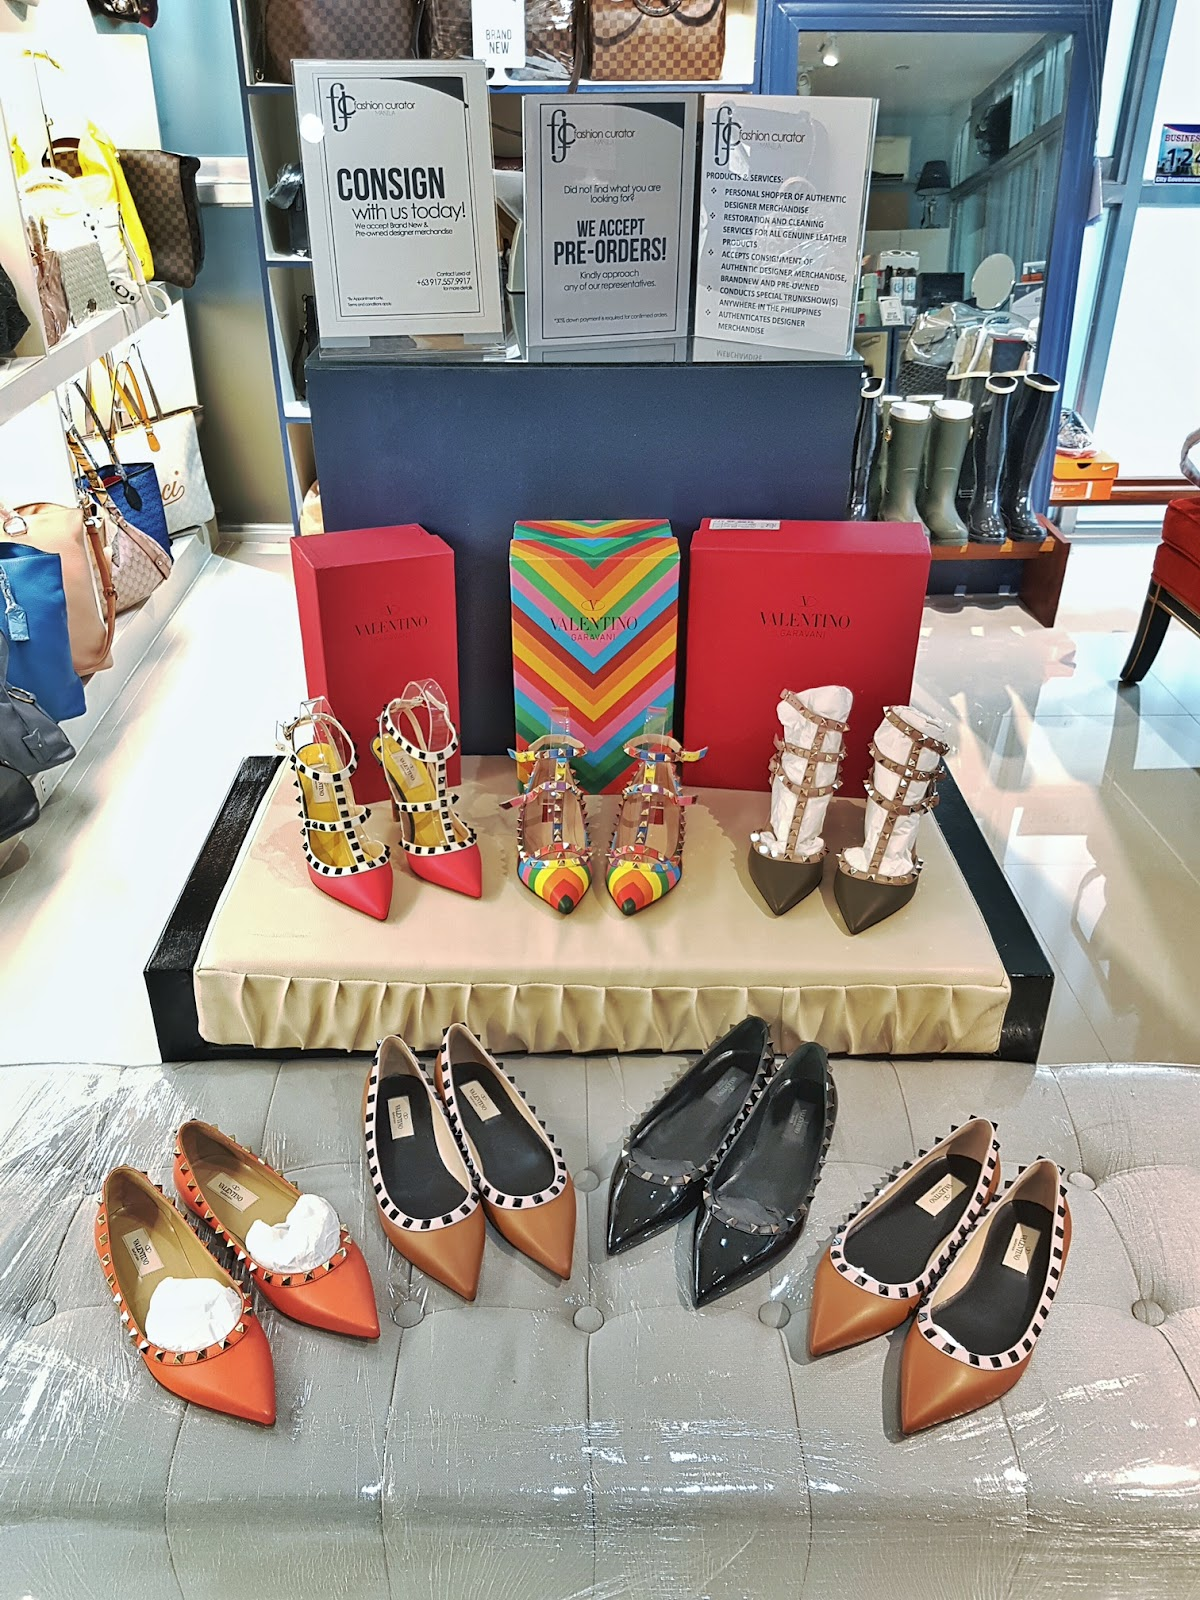 Cebu, Fashion Blogger, Beauty Blogger, Lifestyle, Luxury Items, Cebu Shops, Celine Mini Luggage, Cebu Events, Fashion Curator Manila, branded bags, for sale, Cebu trunk show, pop-up shop, branded preloved bags, Valentino, heels, shoes, spiked shoes